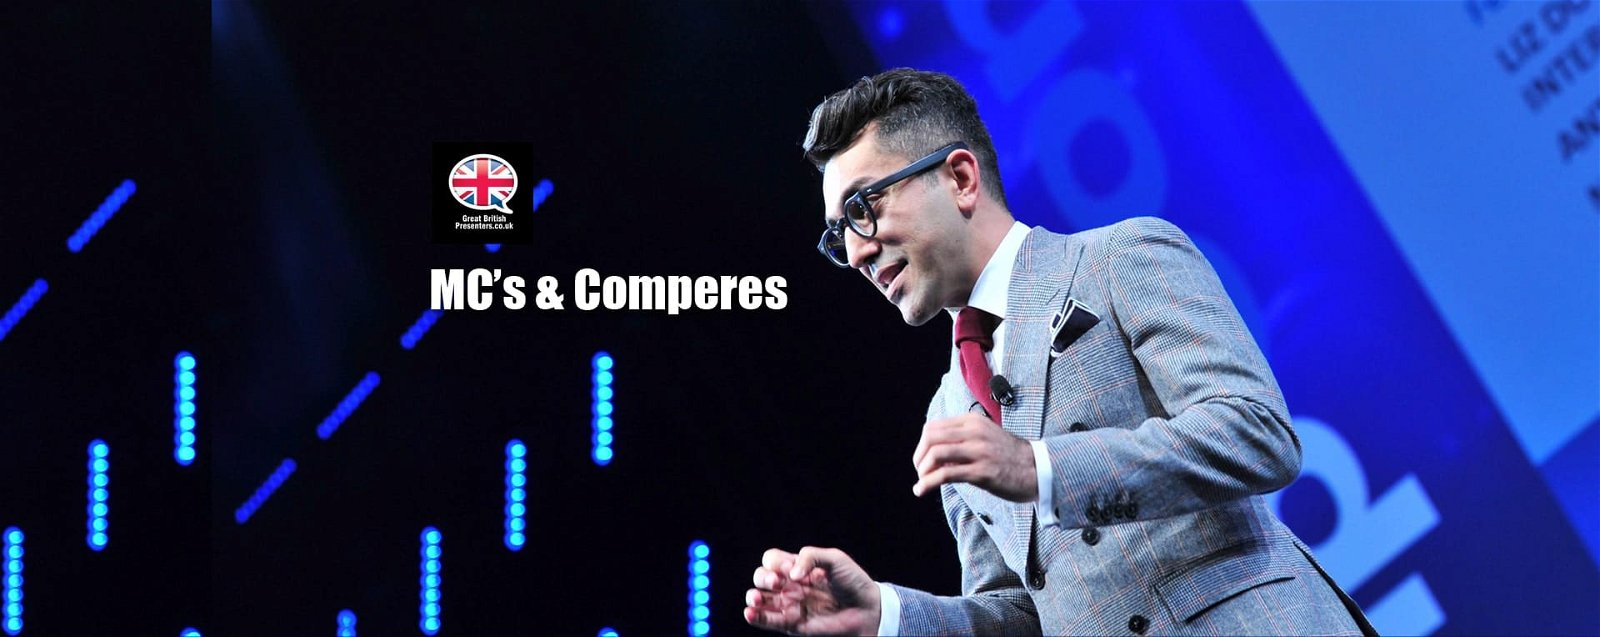 Live Event Corporate MCs & Comperes hosts at Great British Presenters-min